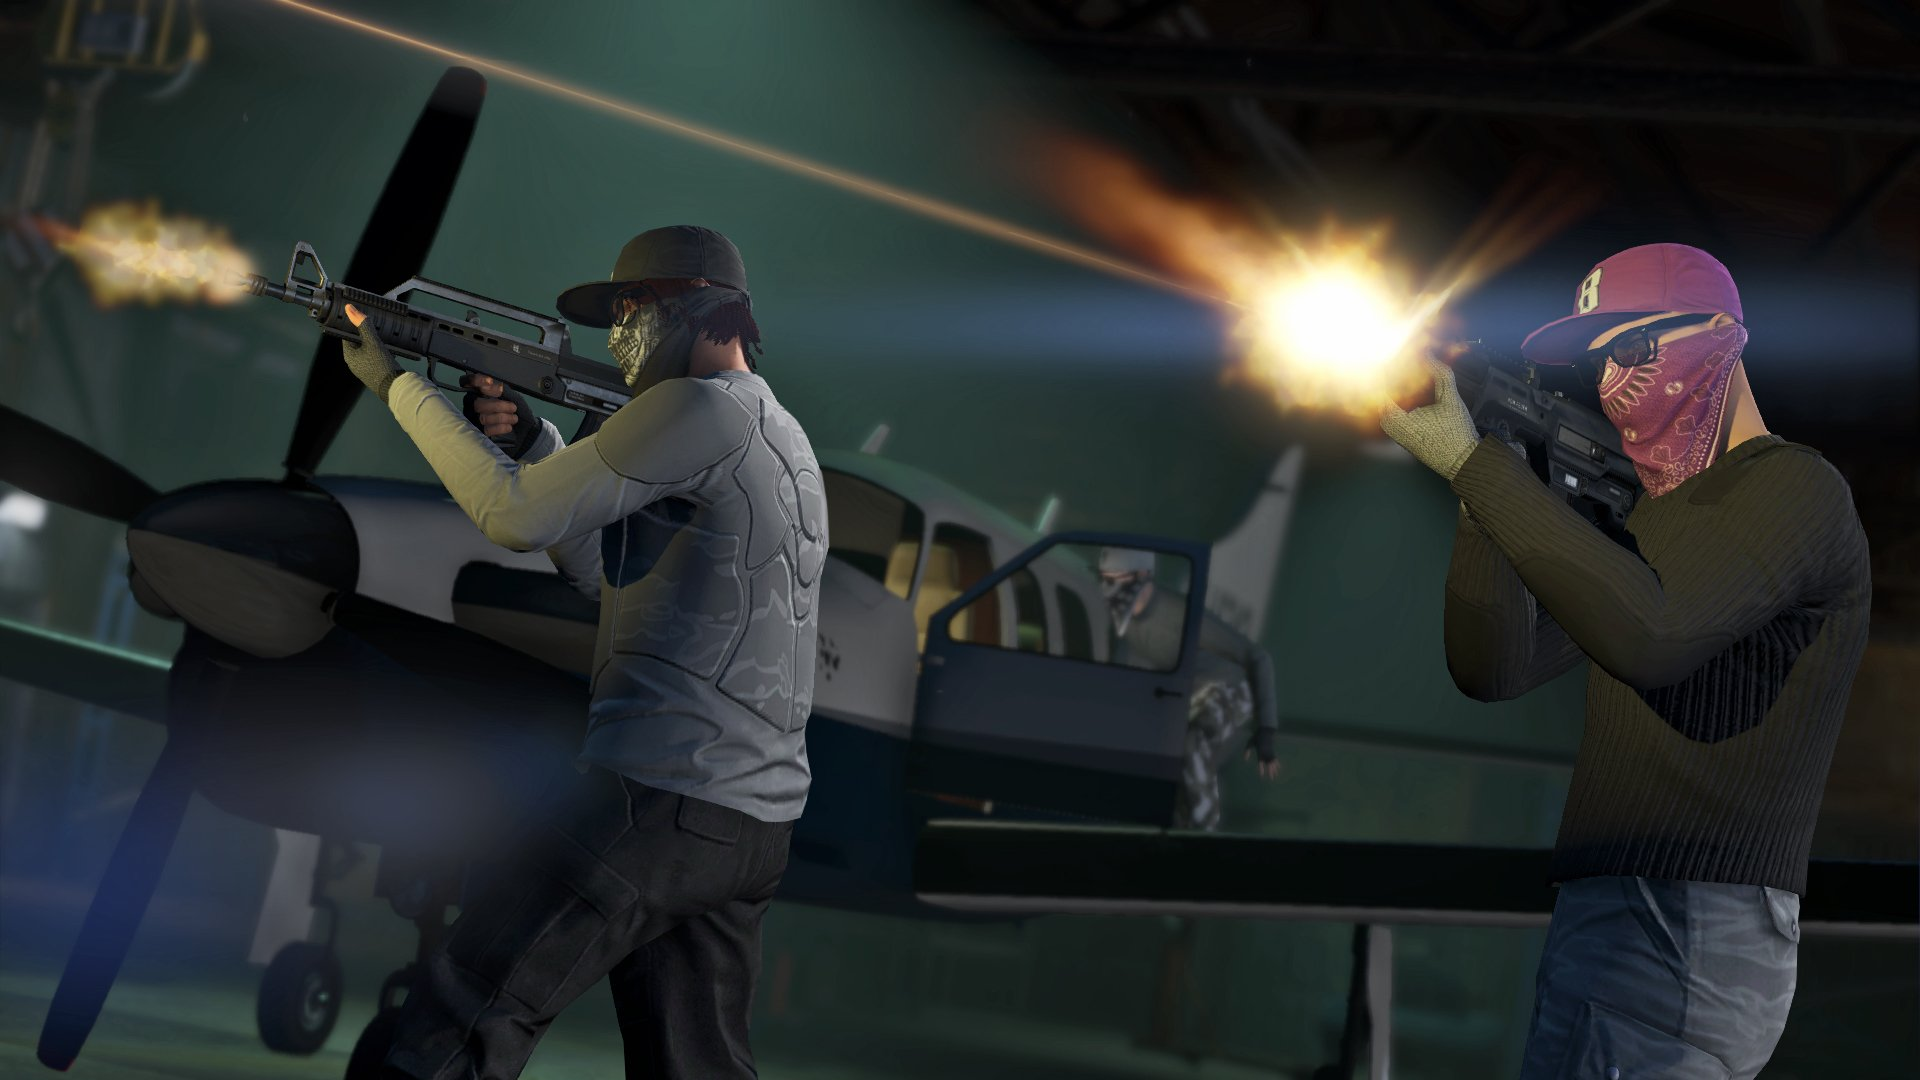 grand theft auto matchmaking Grand theft auto v matchmaking kenosha dating it was released on 1 grand theft auto v matchmaking life dating games.